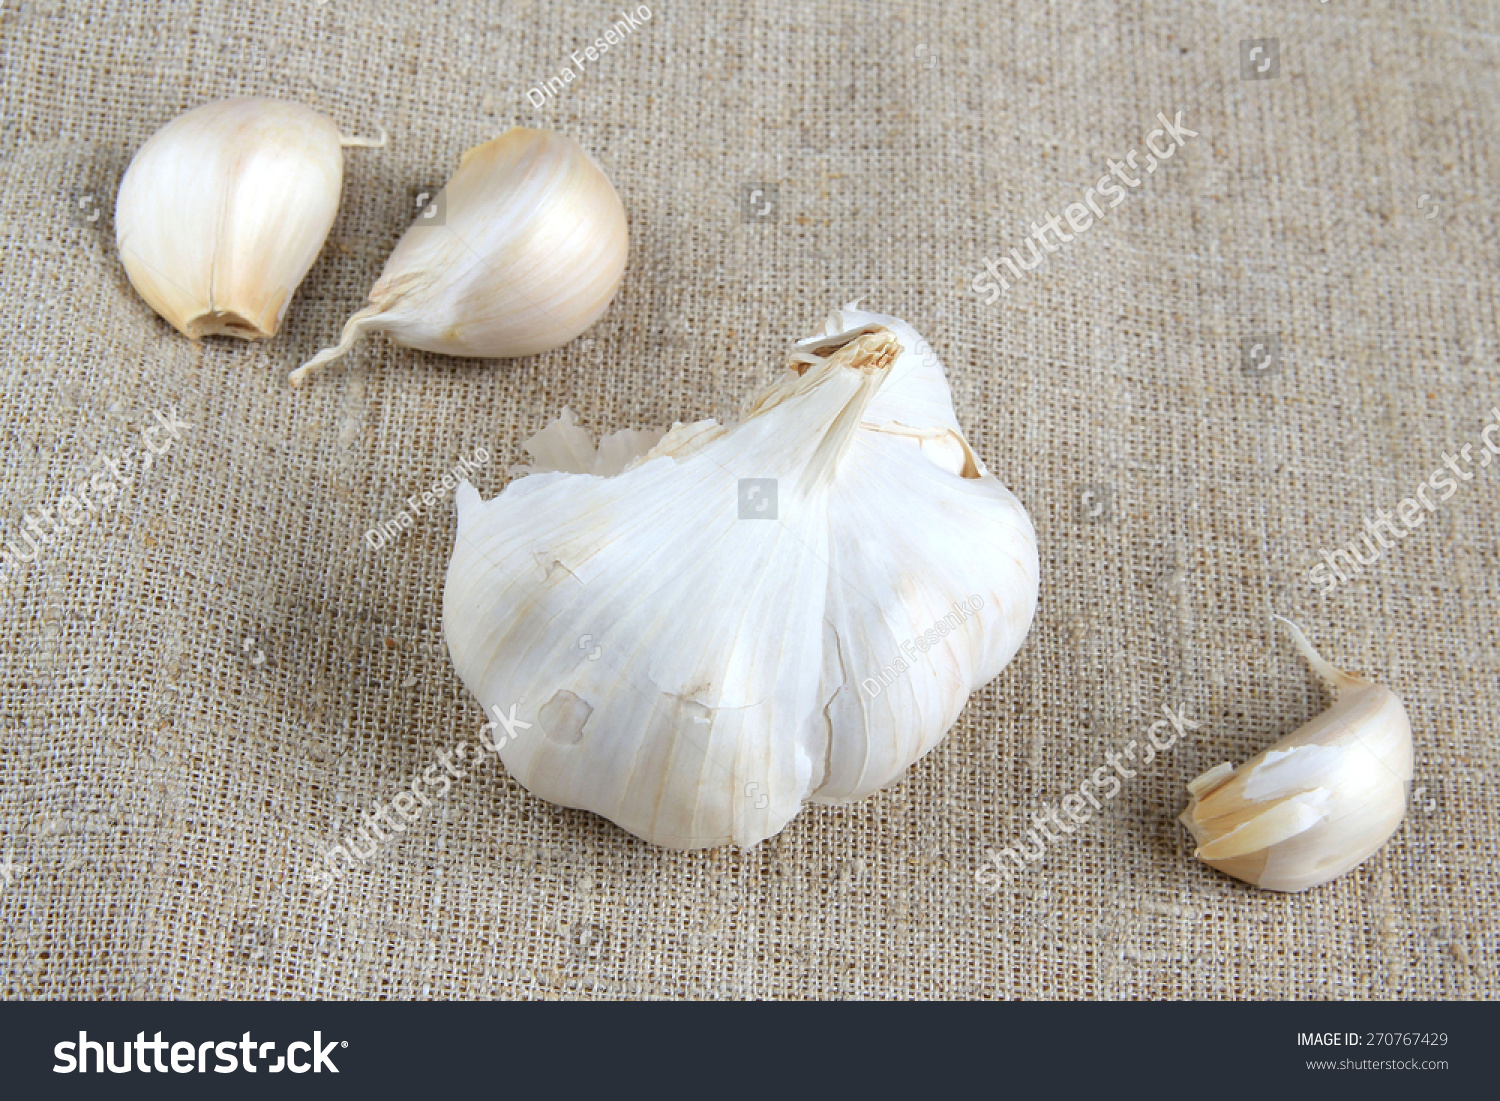 how to get garlic cloves